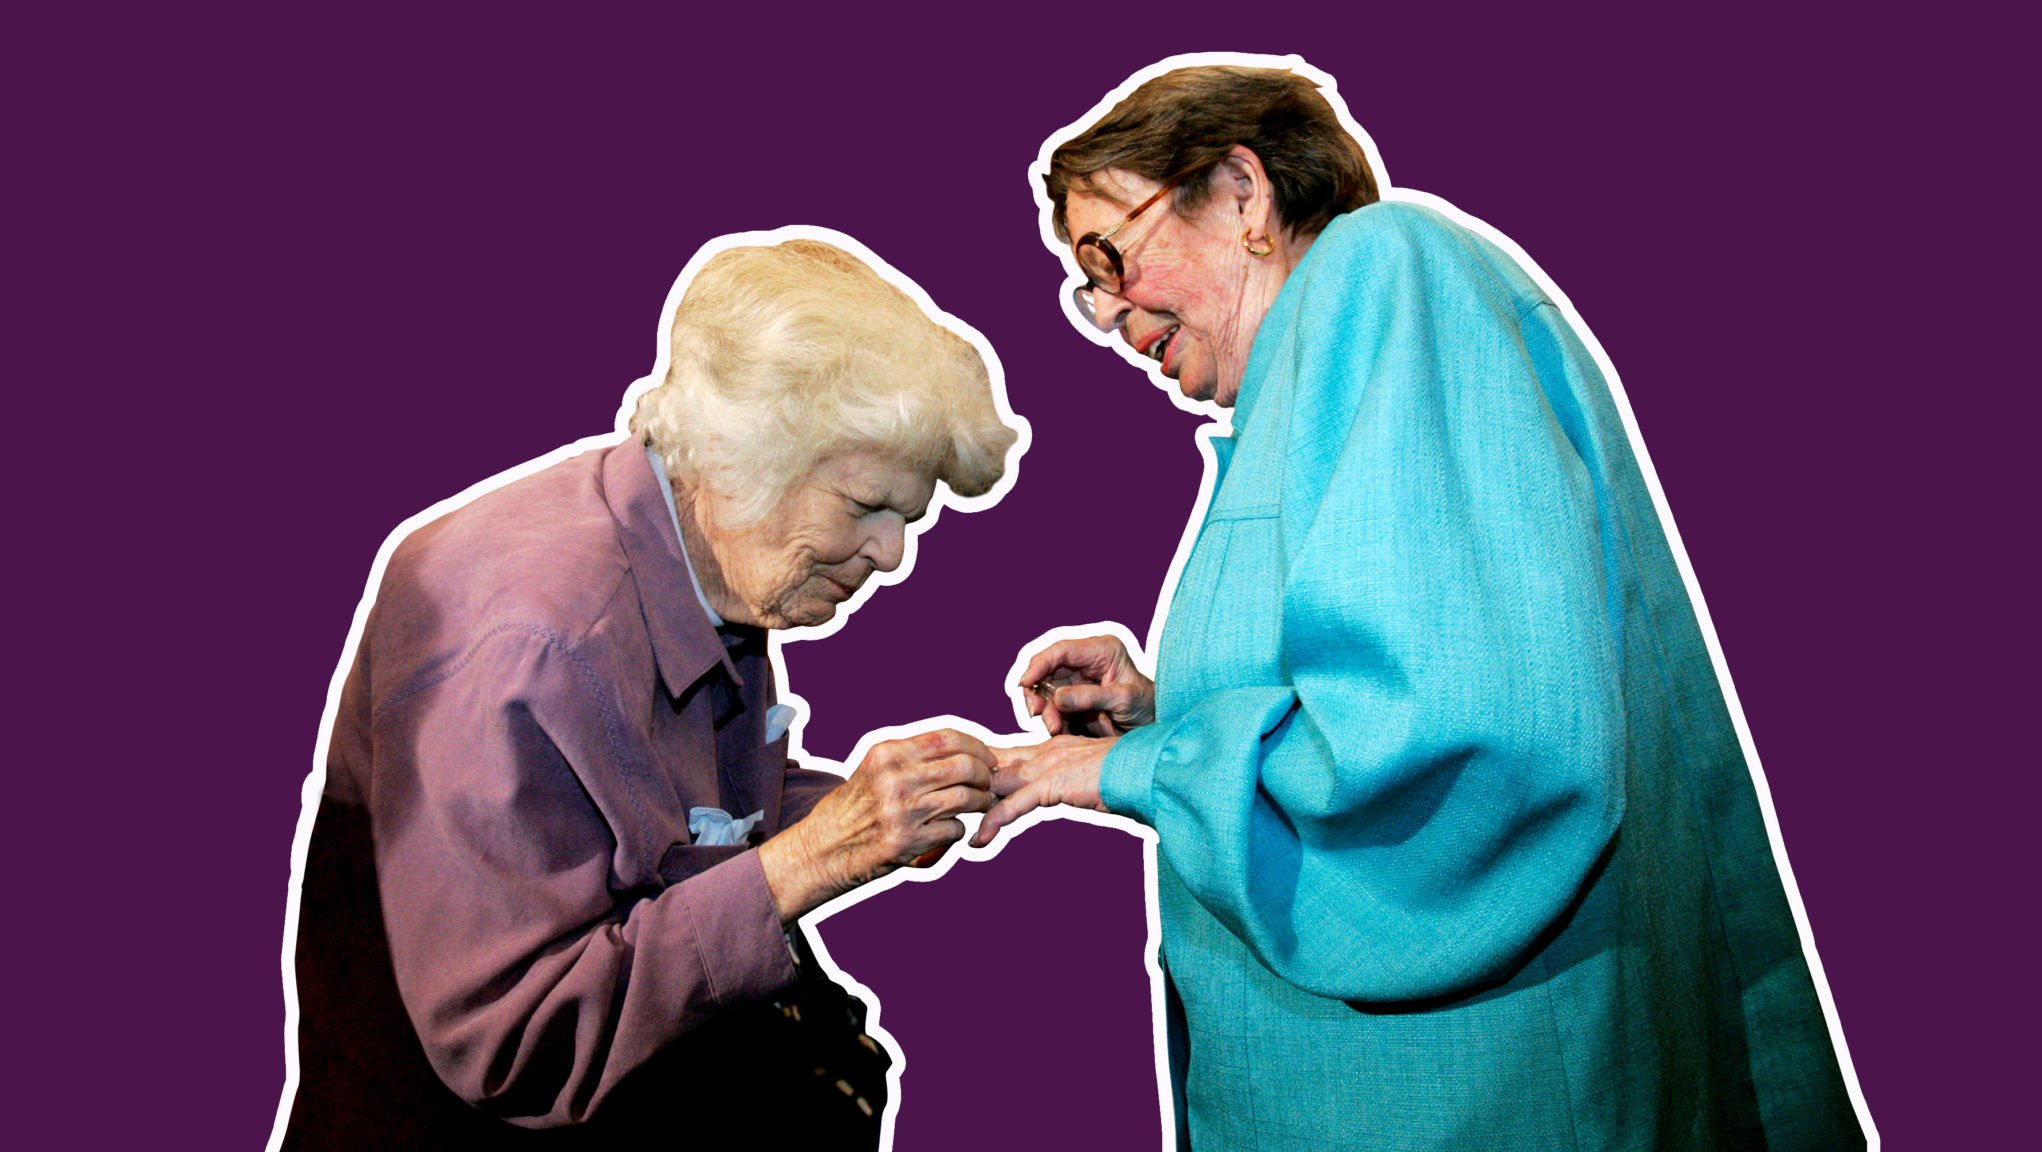 Del Martin, left, places a ring on her partner Phyllis Lyon, right, during their wedding ceremony in San Francisco, on June 16,